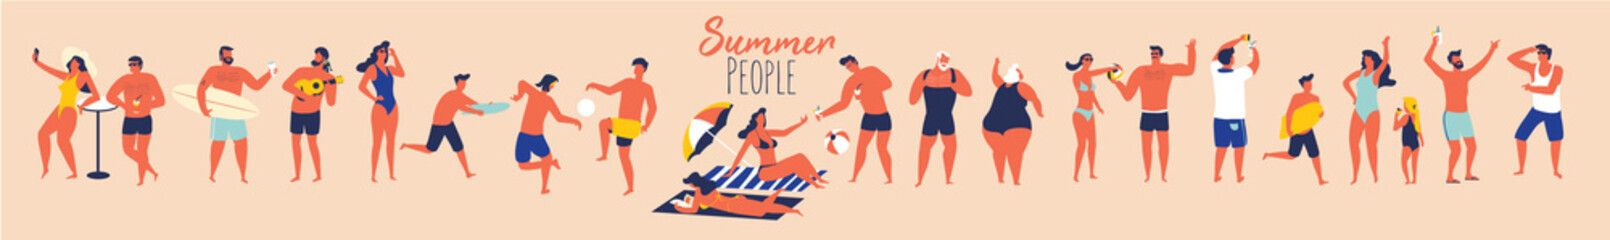 Summer holidays. People in swimming suit in different situations on the beach. Flat design illustration.